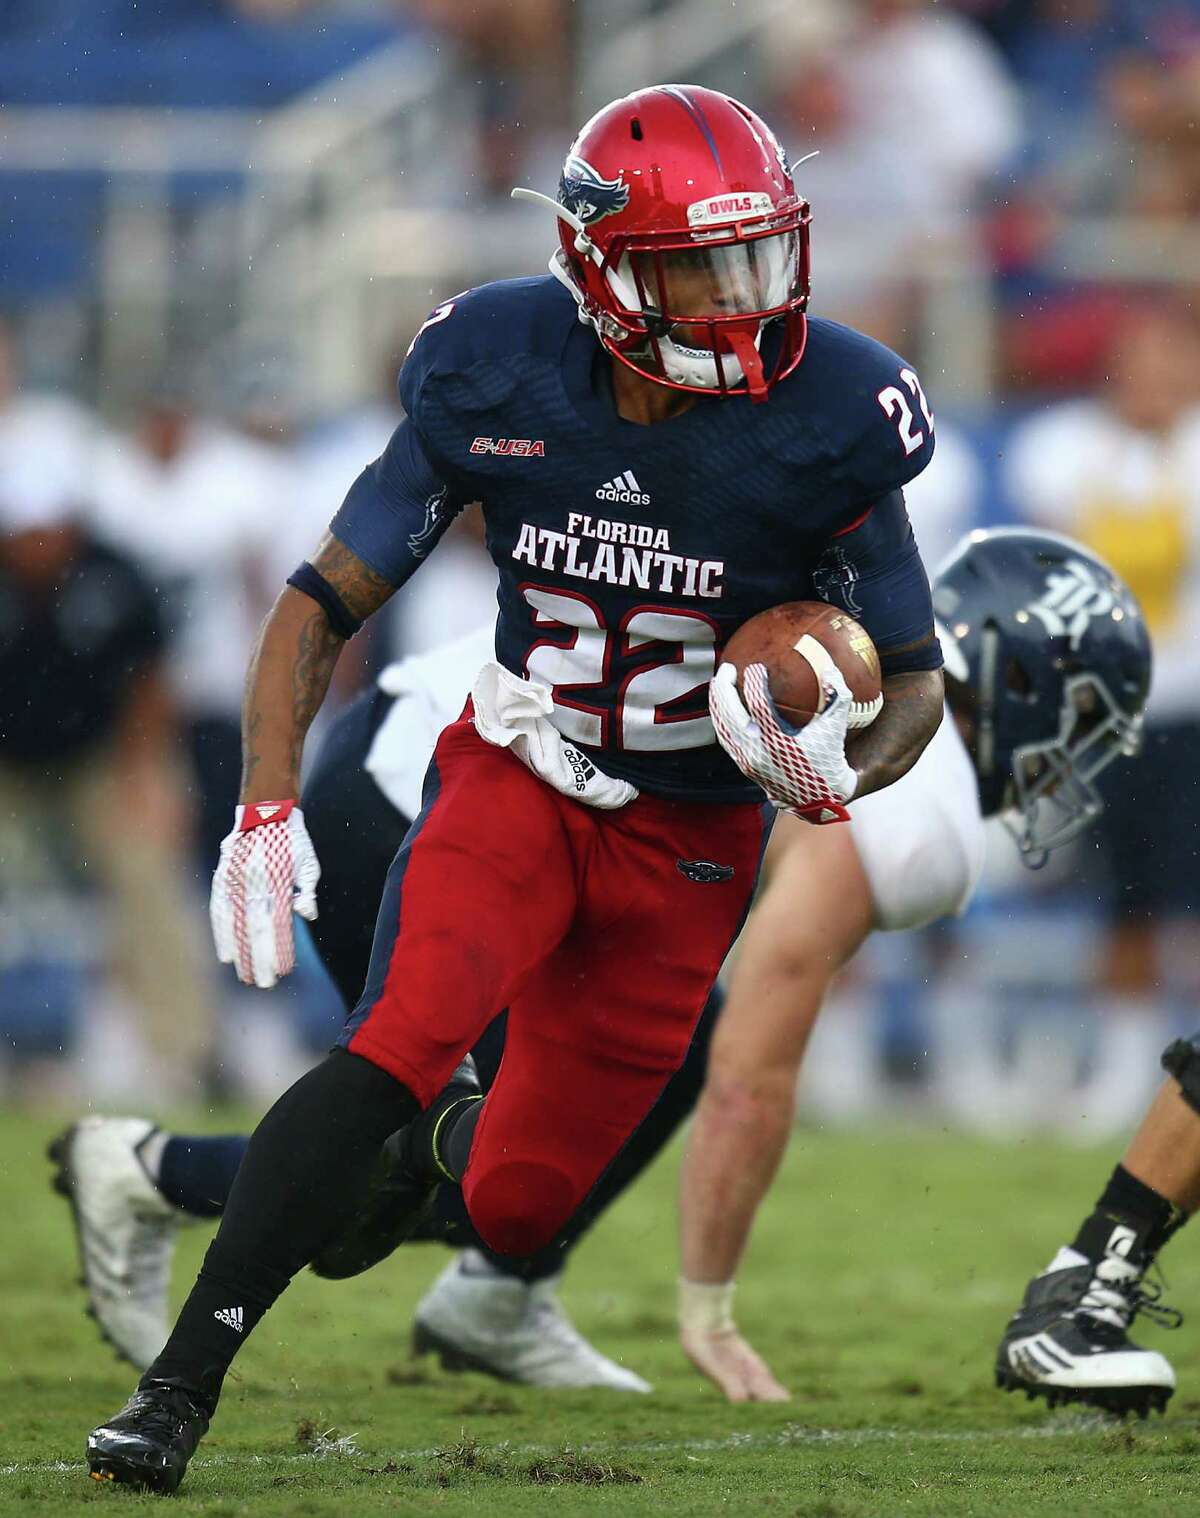 BOCA RATON, FL - OCTOBER 10: Trey Rodriguez #22 of the Florida Atlantic Owls rushes for a touchdown during the fourth quarter of the game against the Rice Owls at FAU Stadium on October 10, 2015 in Boca Raton, Florida.